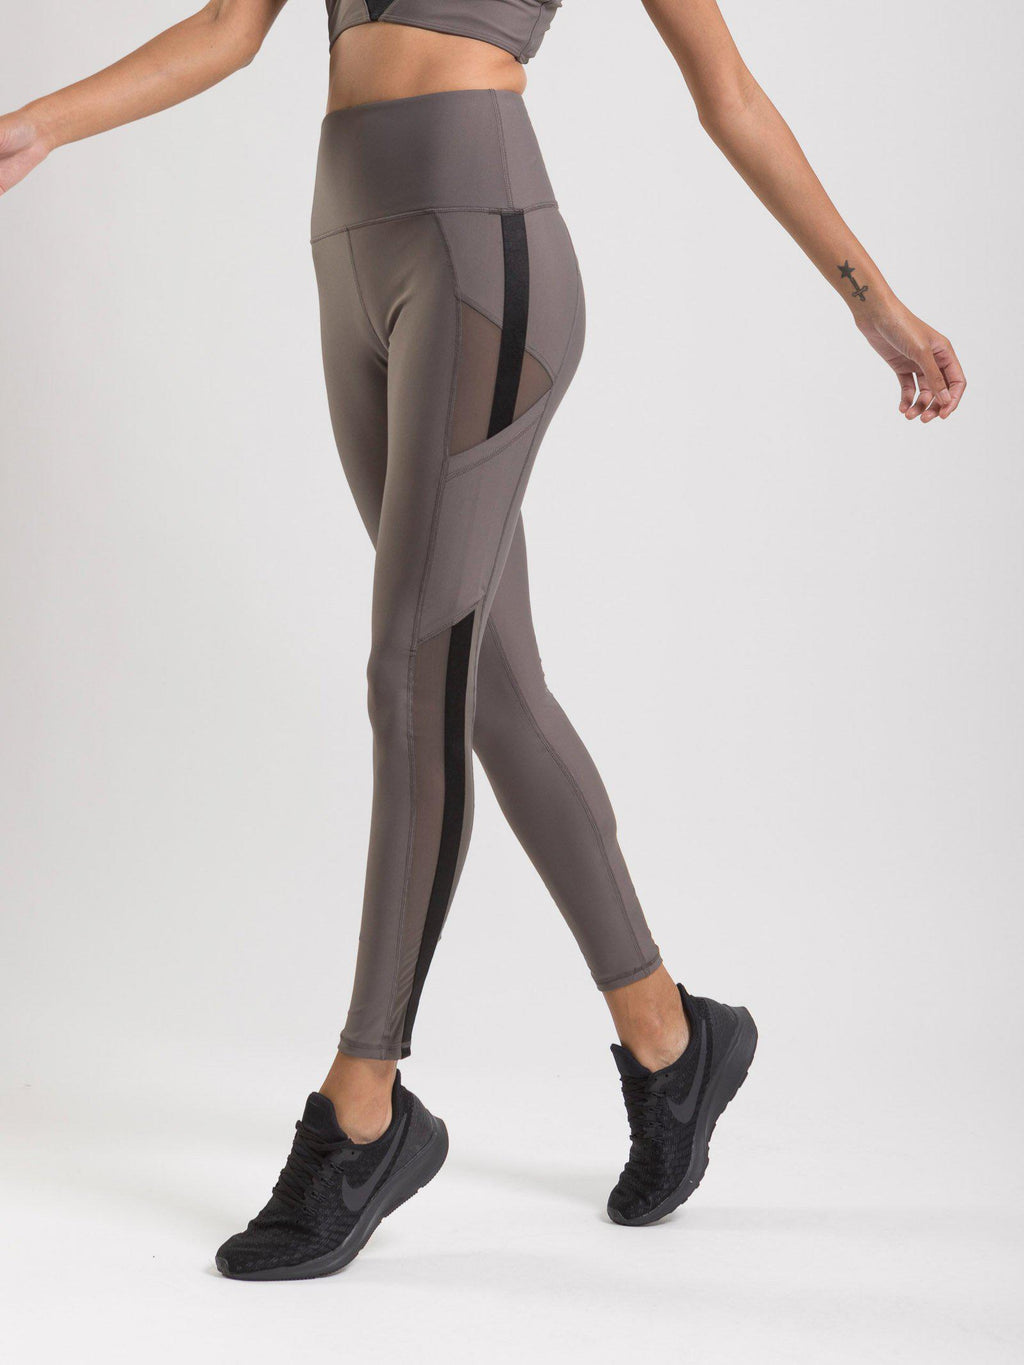 Reveal Legging